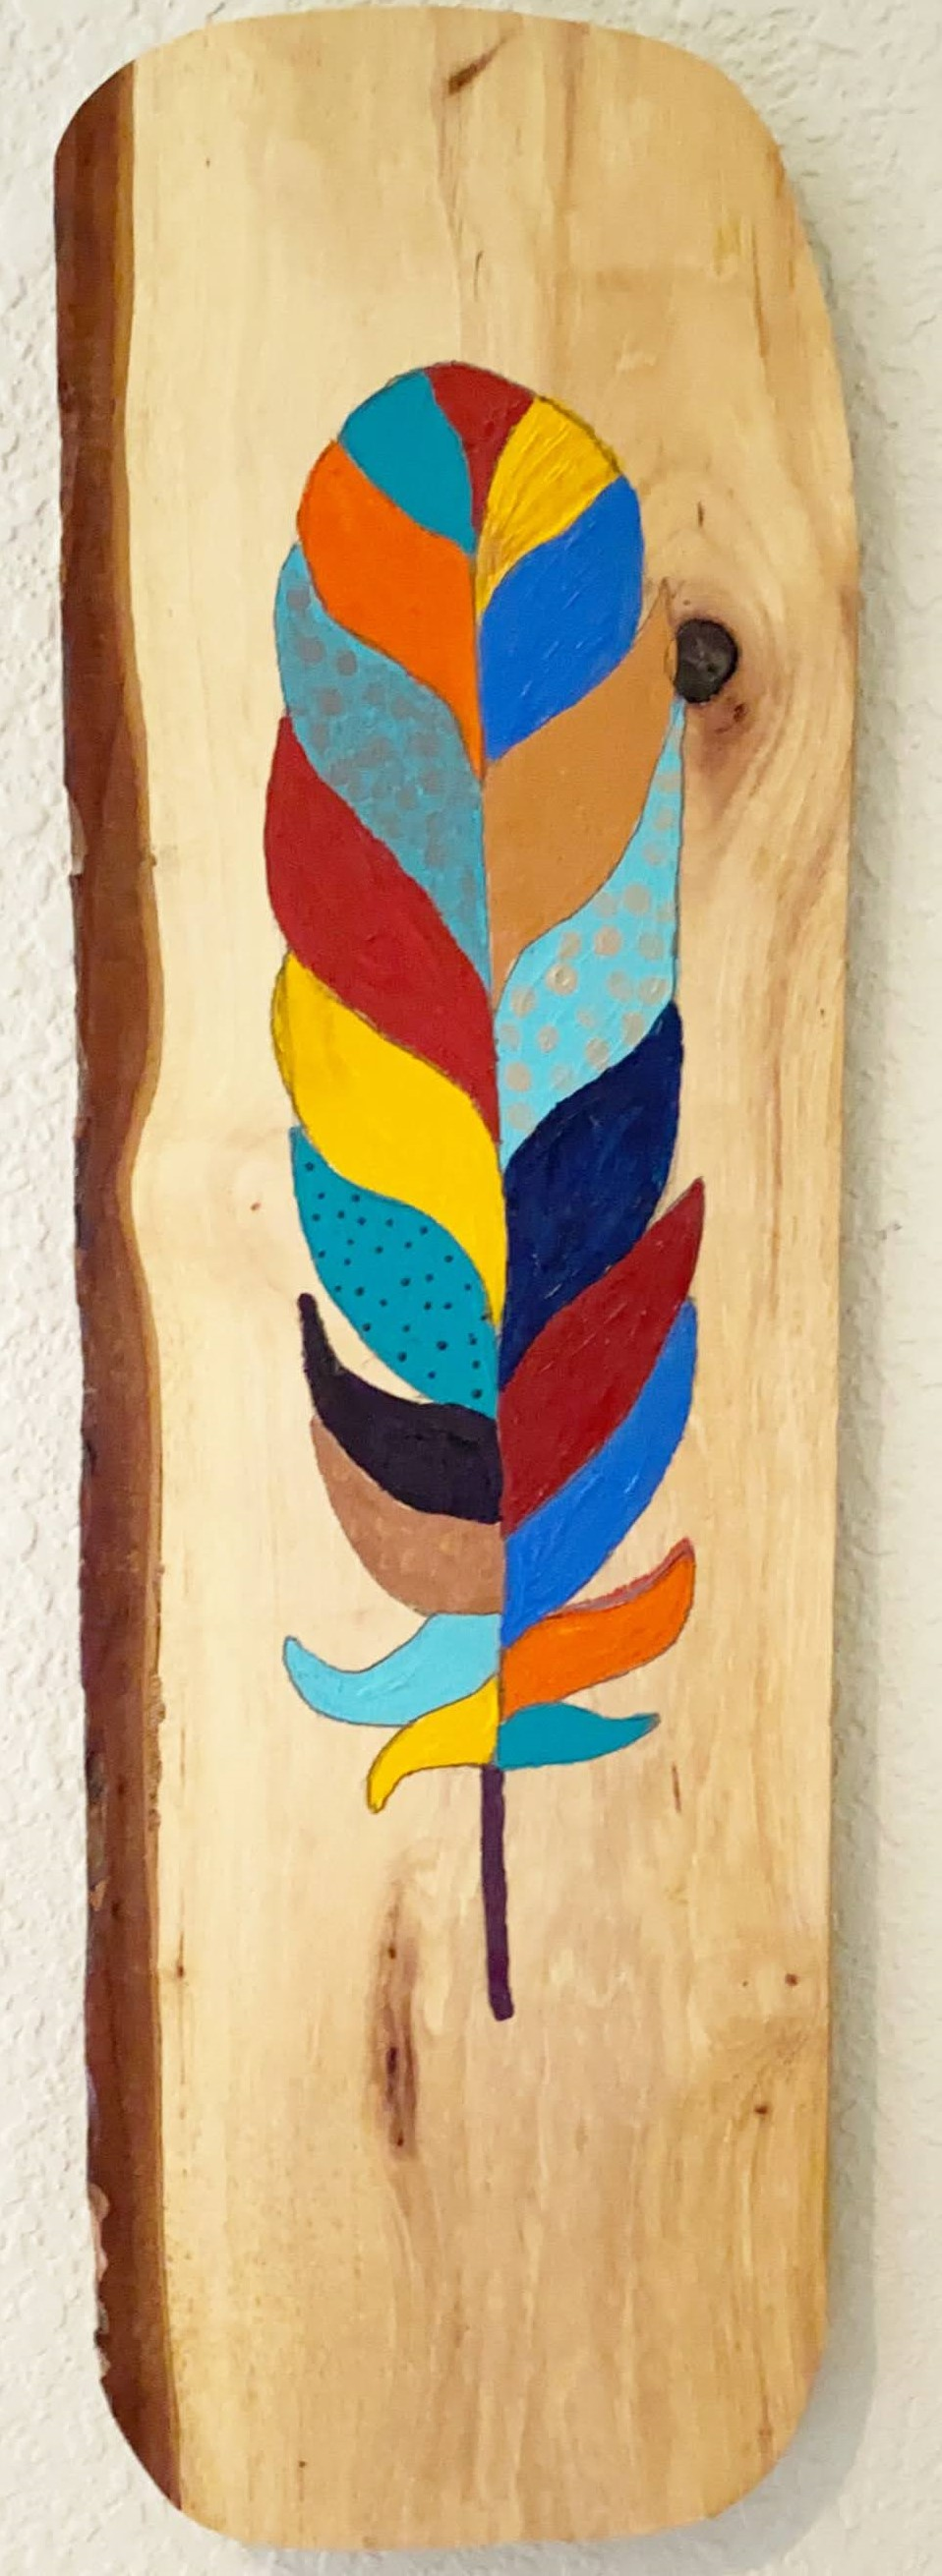 Feather Fantasy 2 - Pam Curtis - 19'' x 6'' - Acrylic on Wood